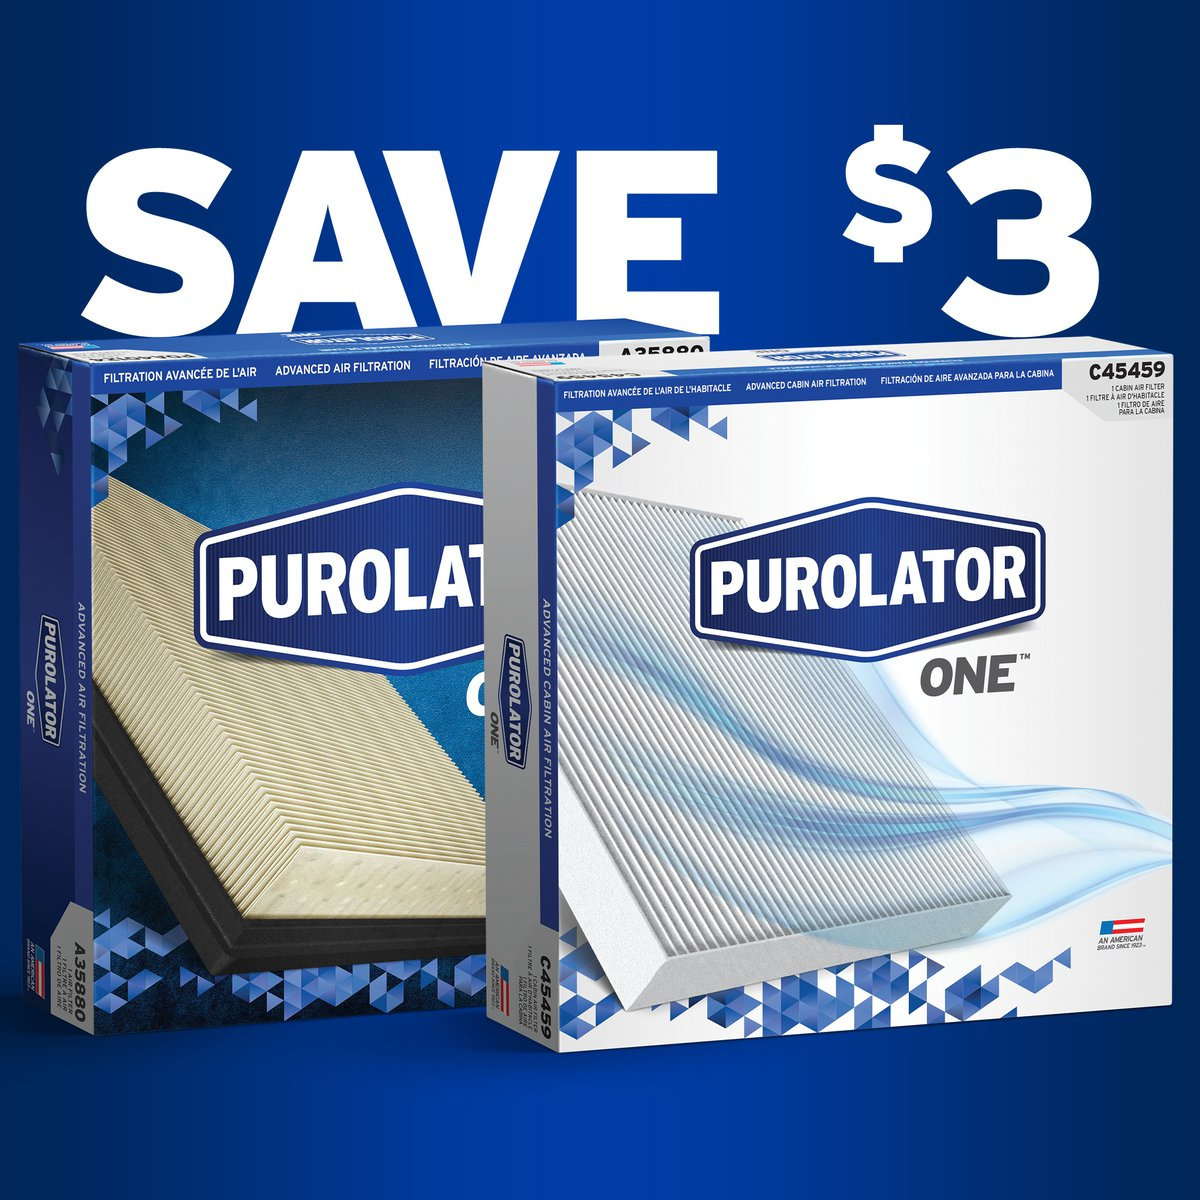 Save $3 now on PurolatorONE Air or Cabin Air Filters with any oil and oil filter bundle purchased at Advance Auto Parts. Plus 50 BONUS Speed Perks points! Click for details. https://t.co/m344AtIZO4 https://t.co/sFIDcoXOFT